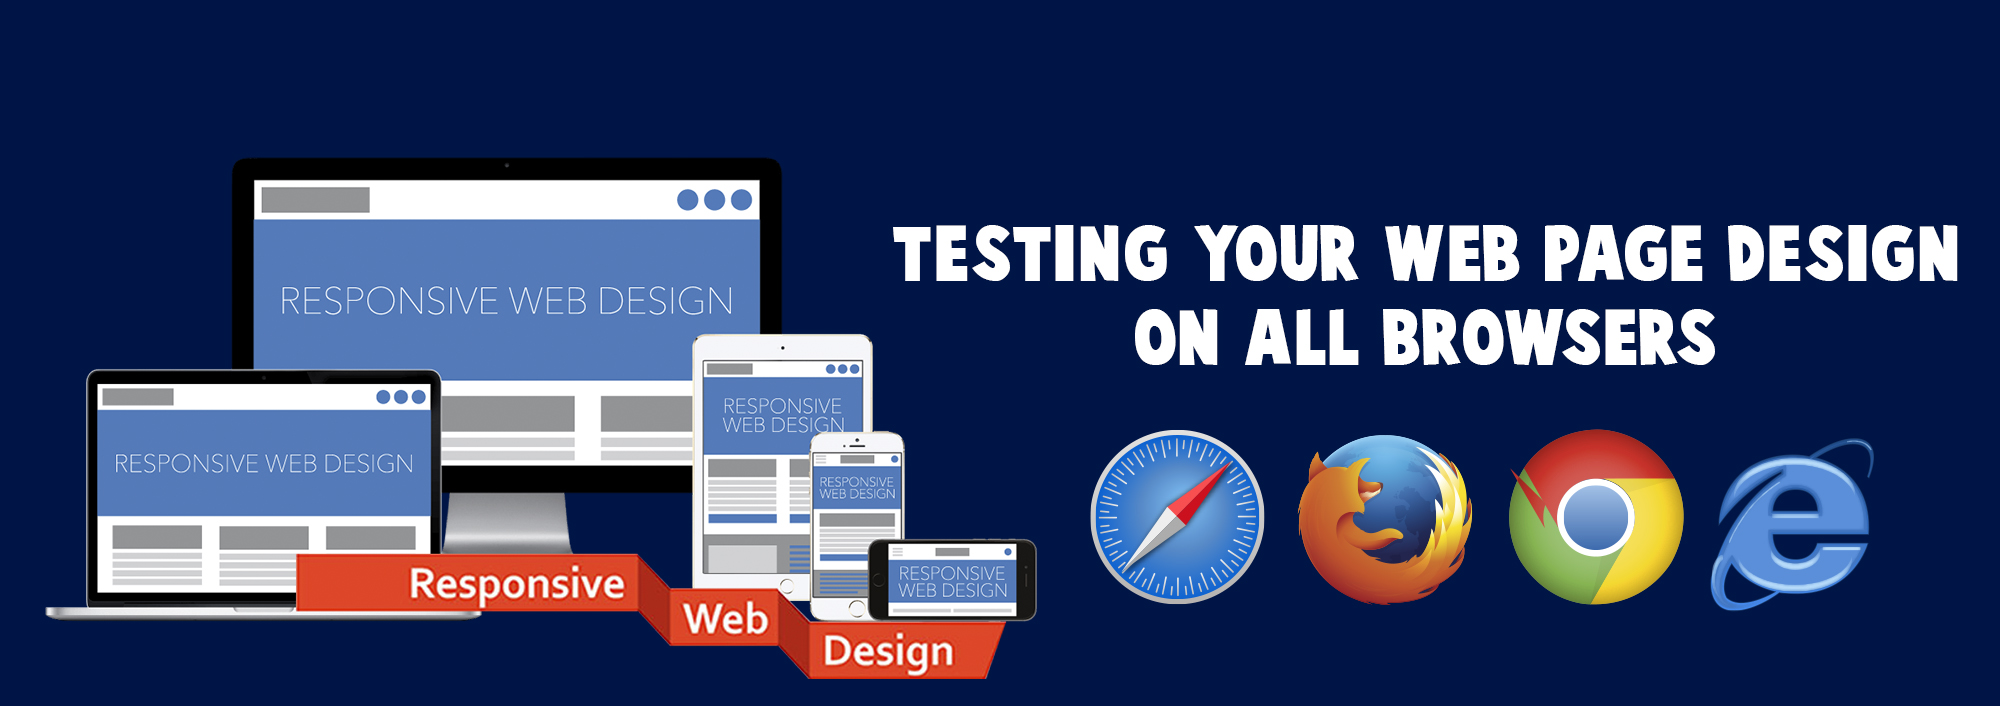 TESTING YOUR WEB PAGE DESIGN ON ALL BROWSERS